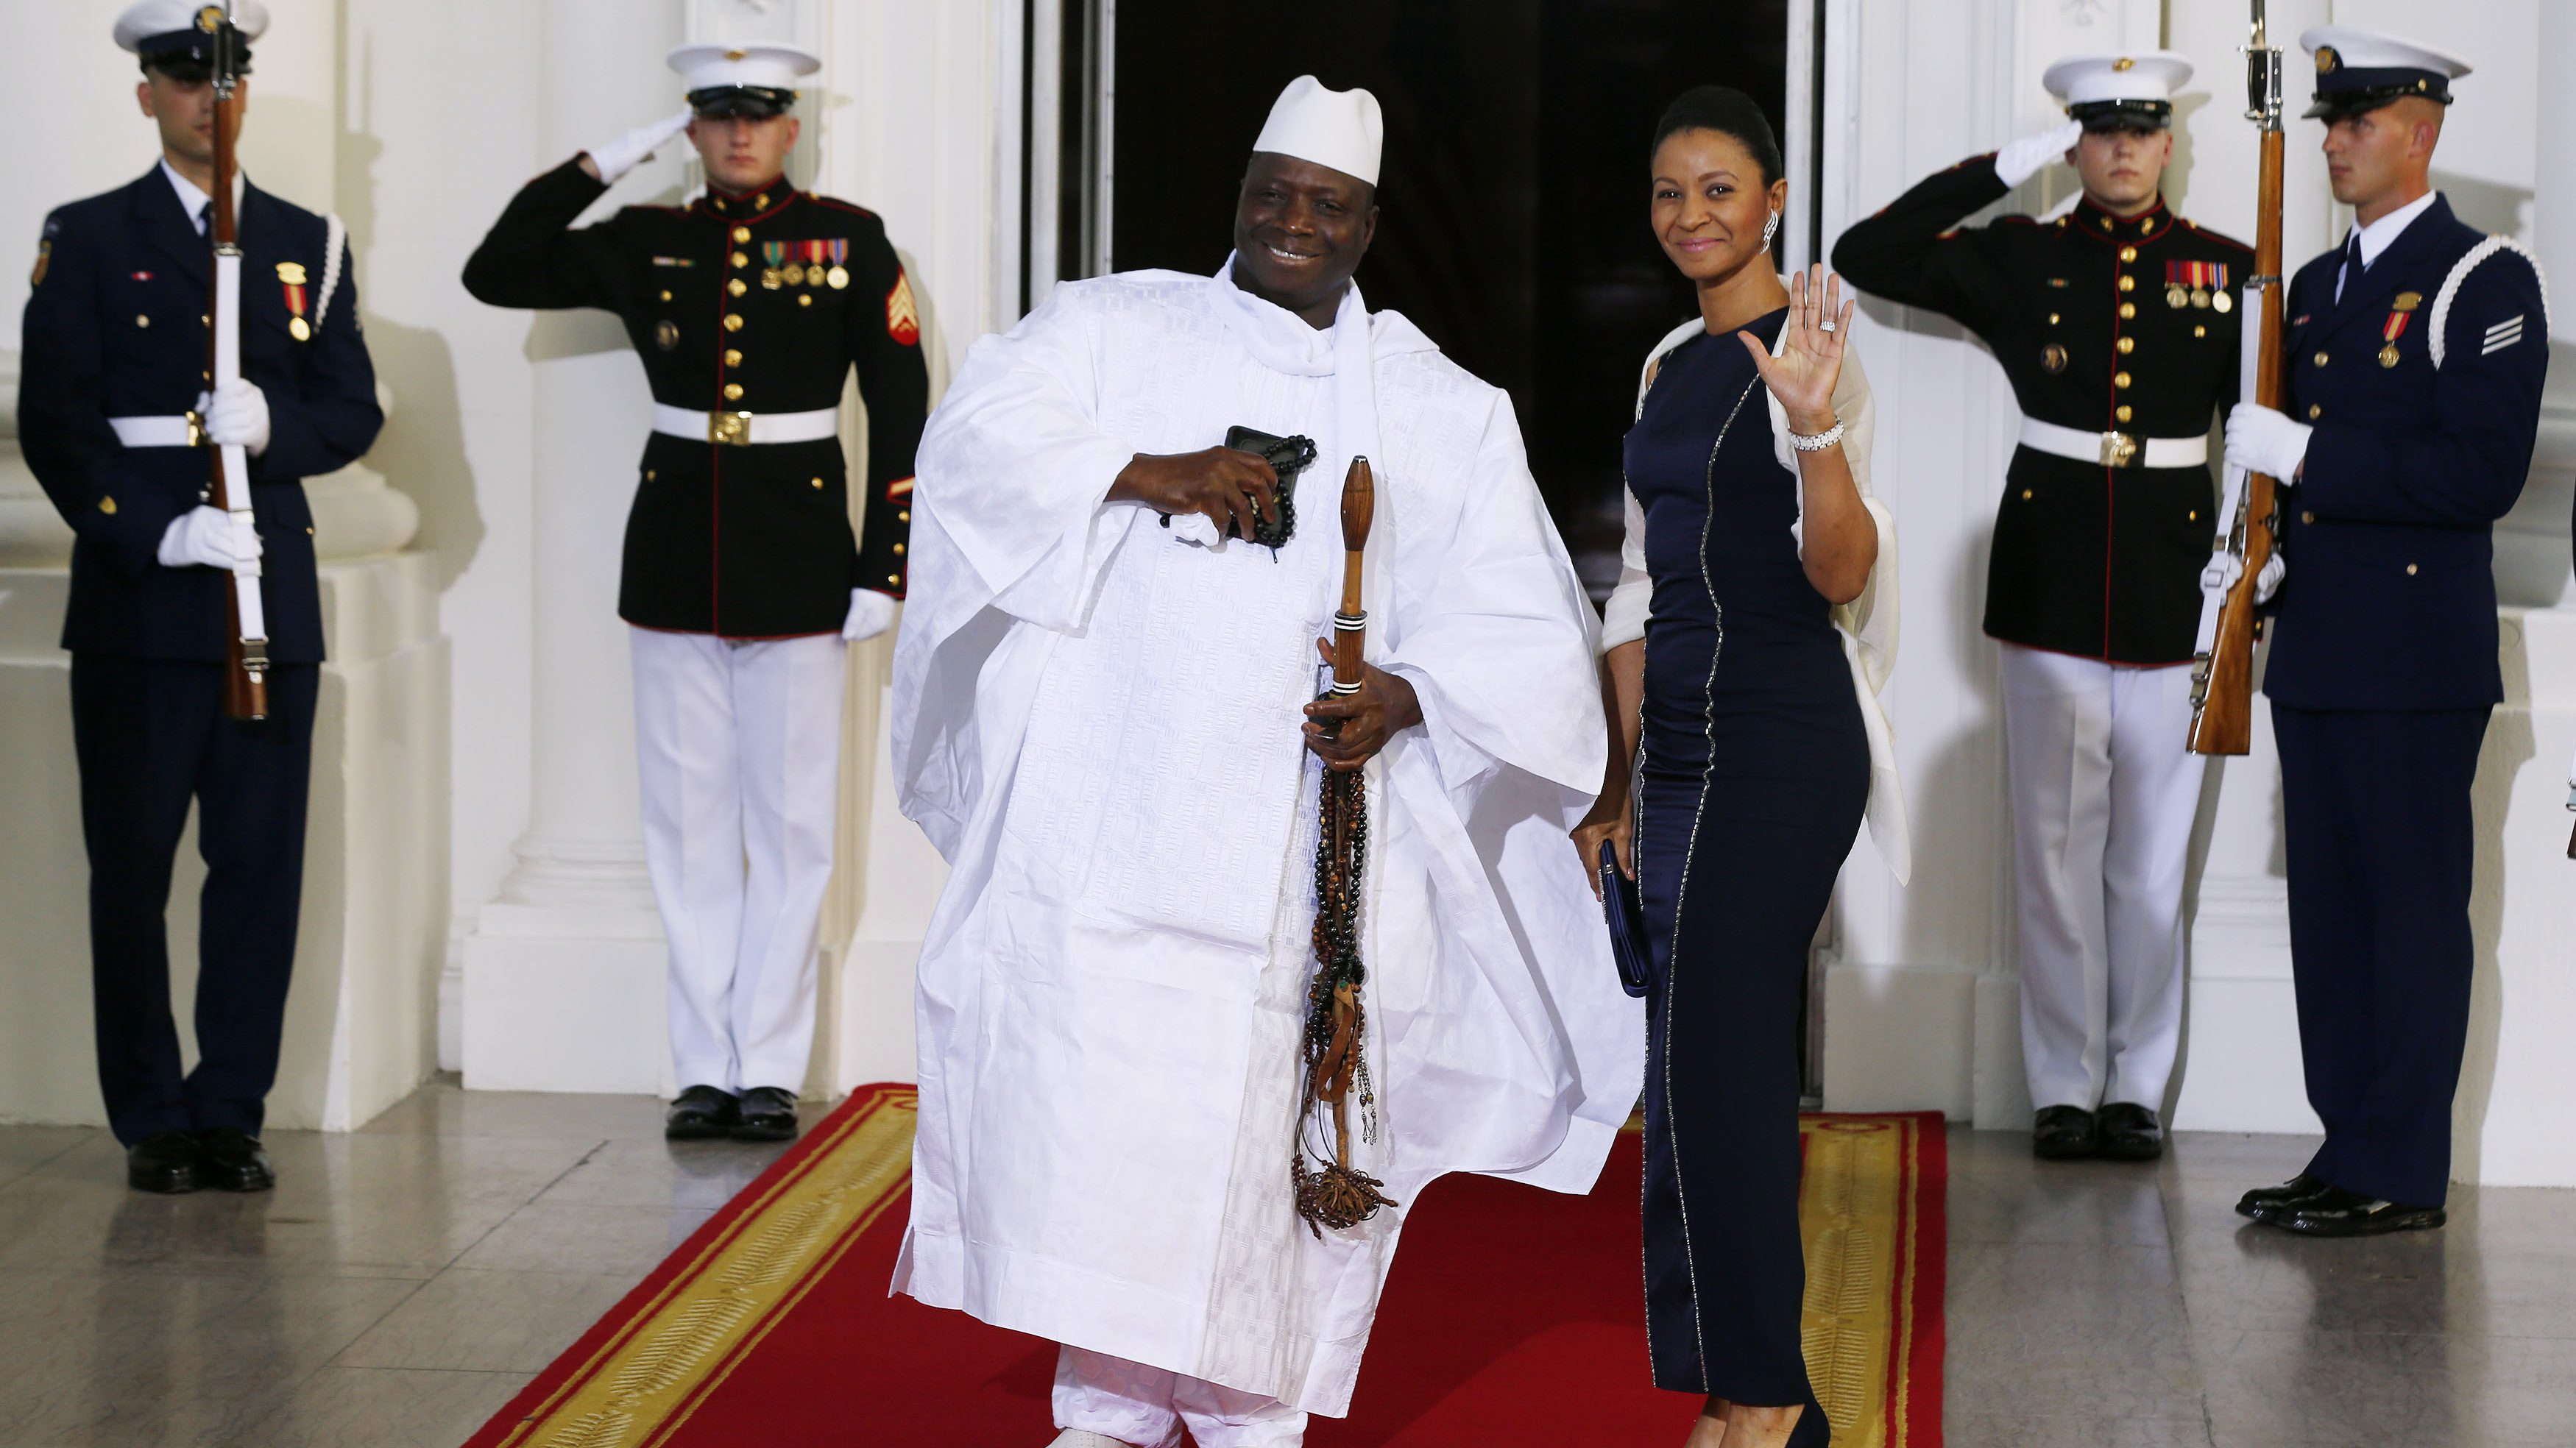 Republic of the Gambia's President Jammeh and his wife arrive for the official U.S.-Africa Leaders Summit dinner hosted by U.S. President Barack Obama at the White House in Washington